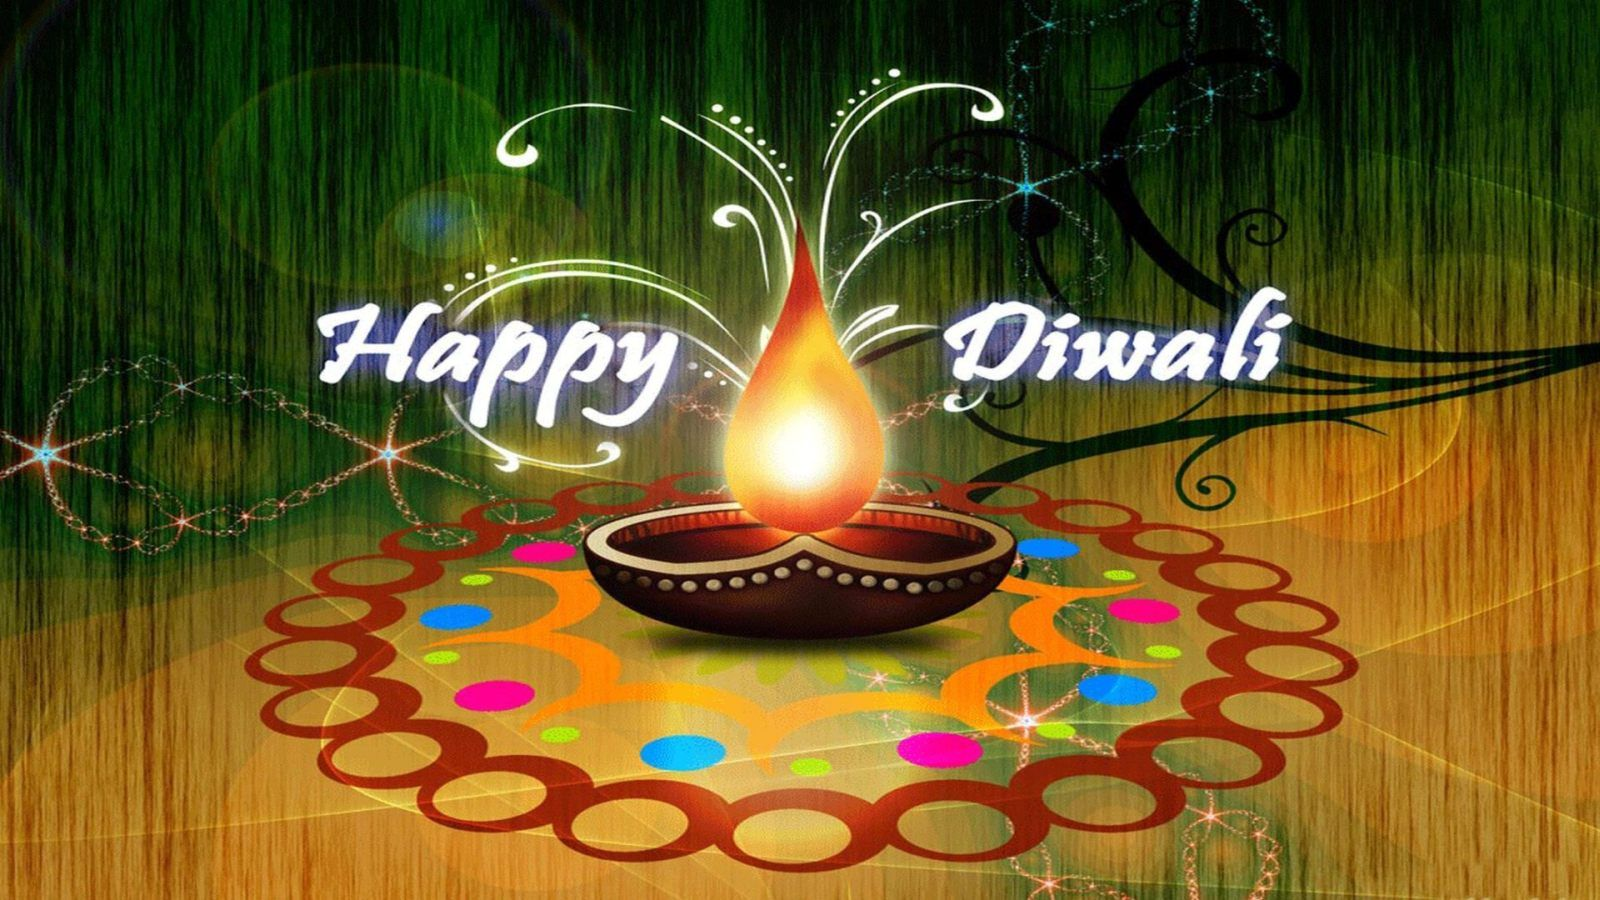 Happy Diwali 1080p HD wallpapers, pictures and screensaver for your laptop desktop